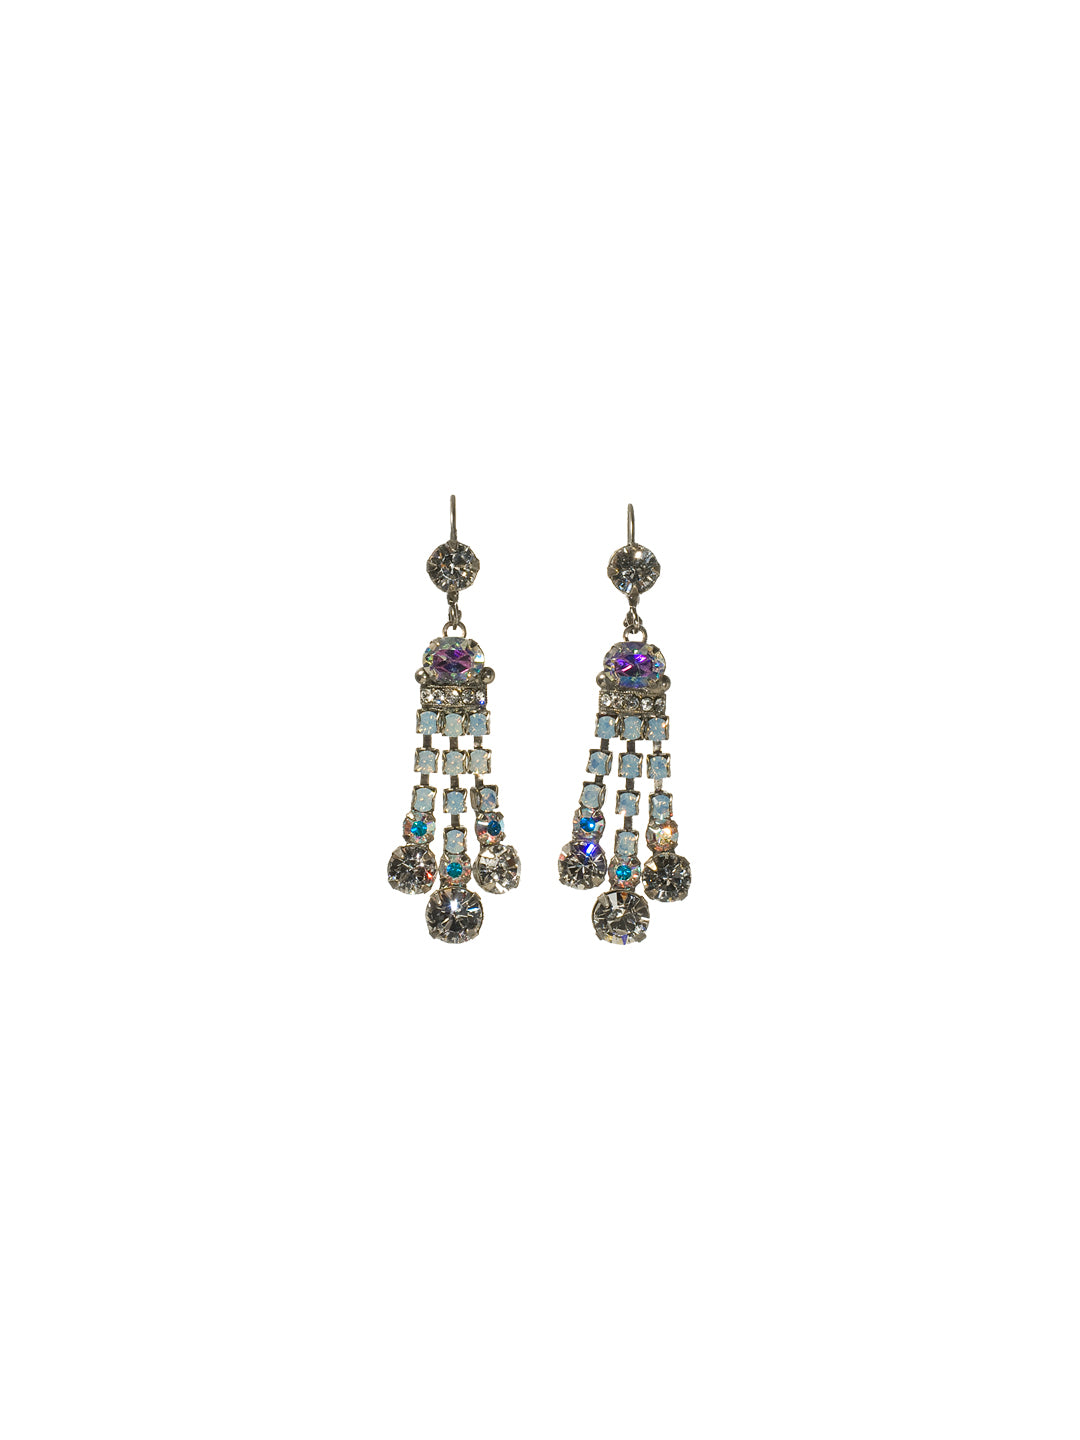 Three-Strand Dress-Up Dangle Earrings - ECC1ASWBR